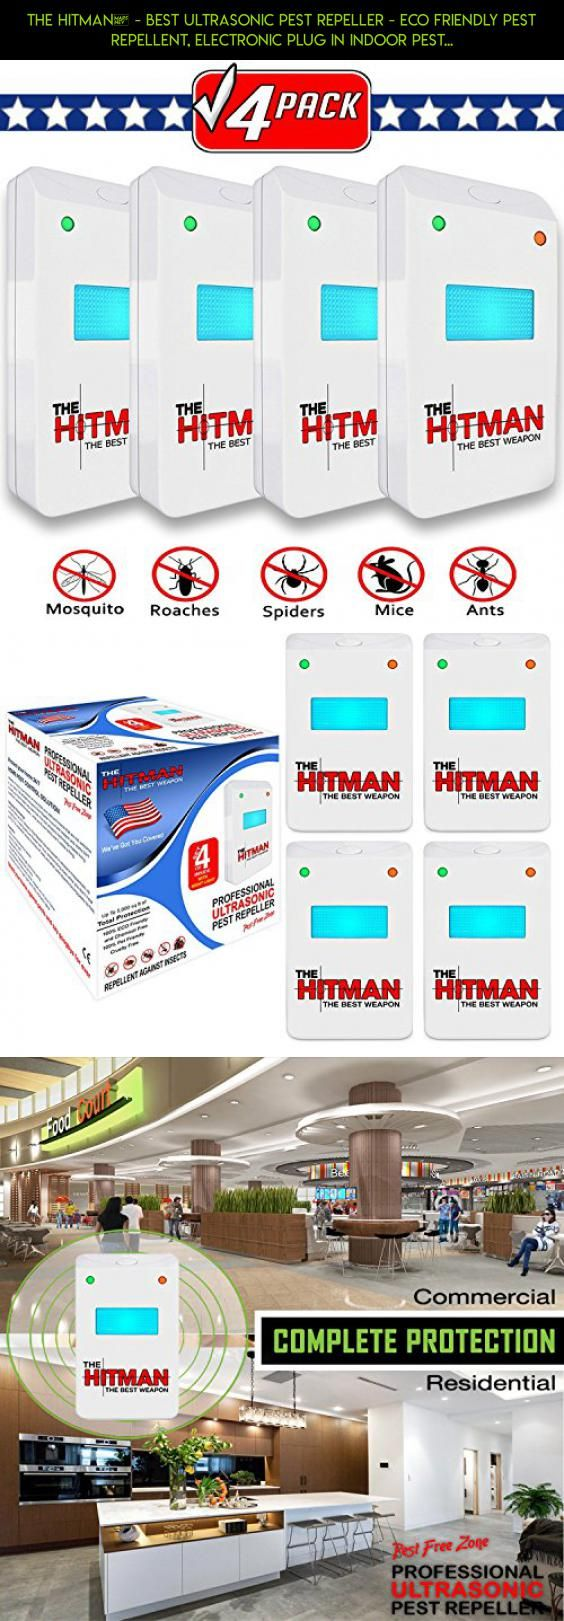 THE HITMAN® - Best Ultrasonic Pest Repeller - Eco Friendly Pest Repellent, Electronic Plug In Indoor Pest Control, Insects Cockroach Rodents Flies Roaches Ants Spiders Fleas Mice Bugs Rats Mosquitos #camera #plans #parts #products #tech #shopping #drone #racing #device #storage #fpv #kit #i #gadgets #technology